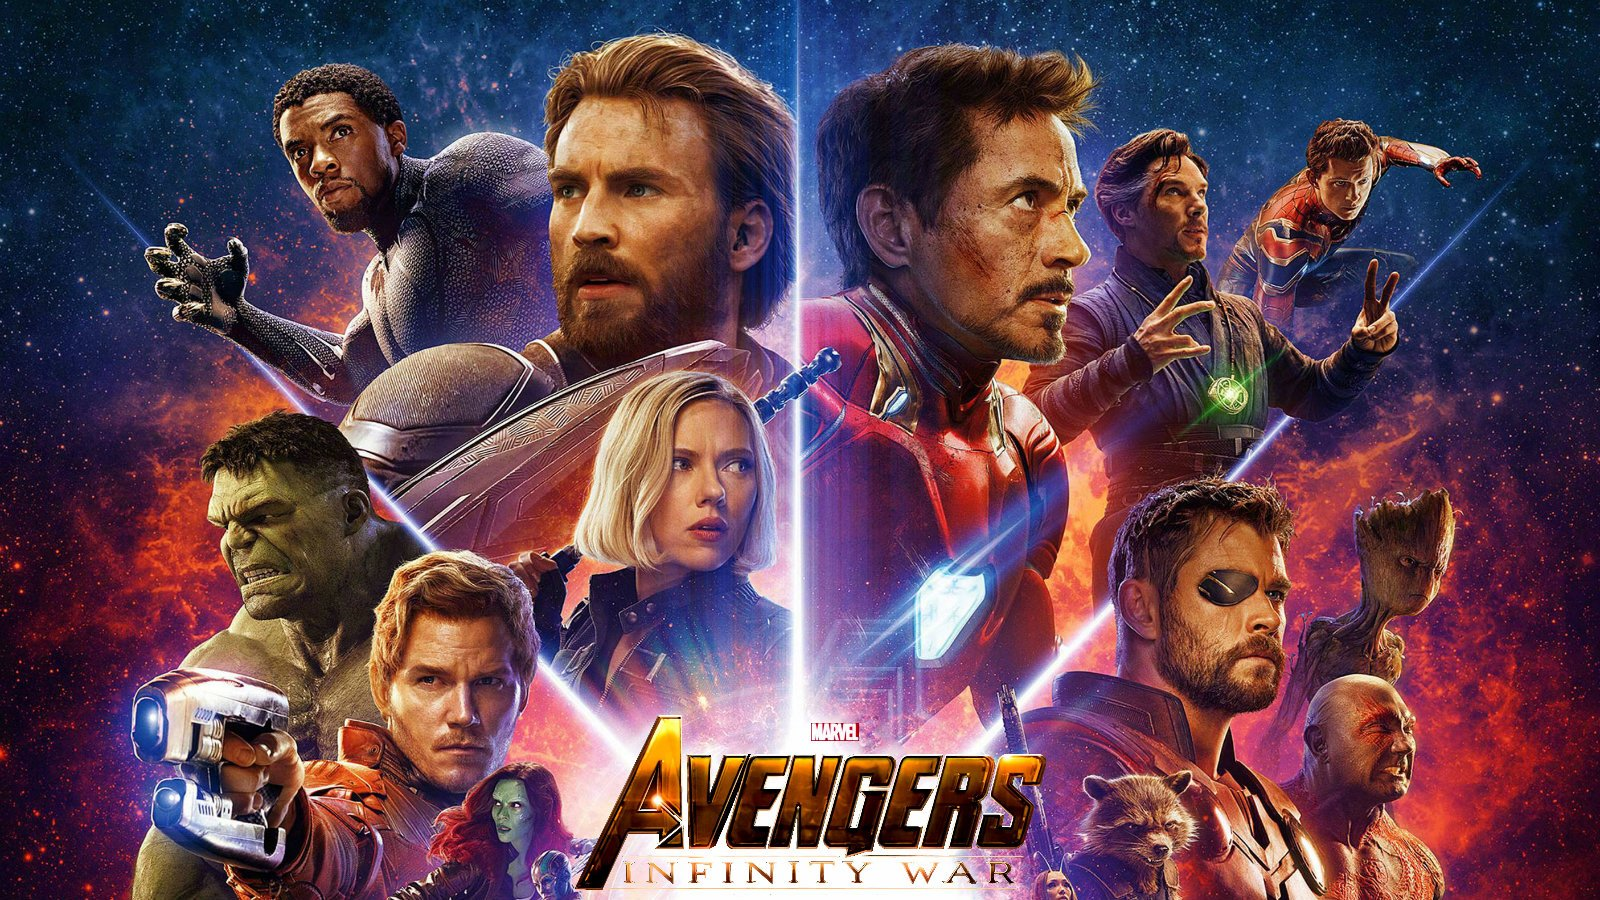 Free Download Avengers Infinity War 1 2 Images Avengers